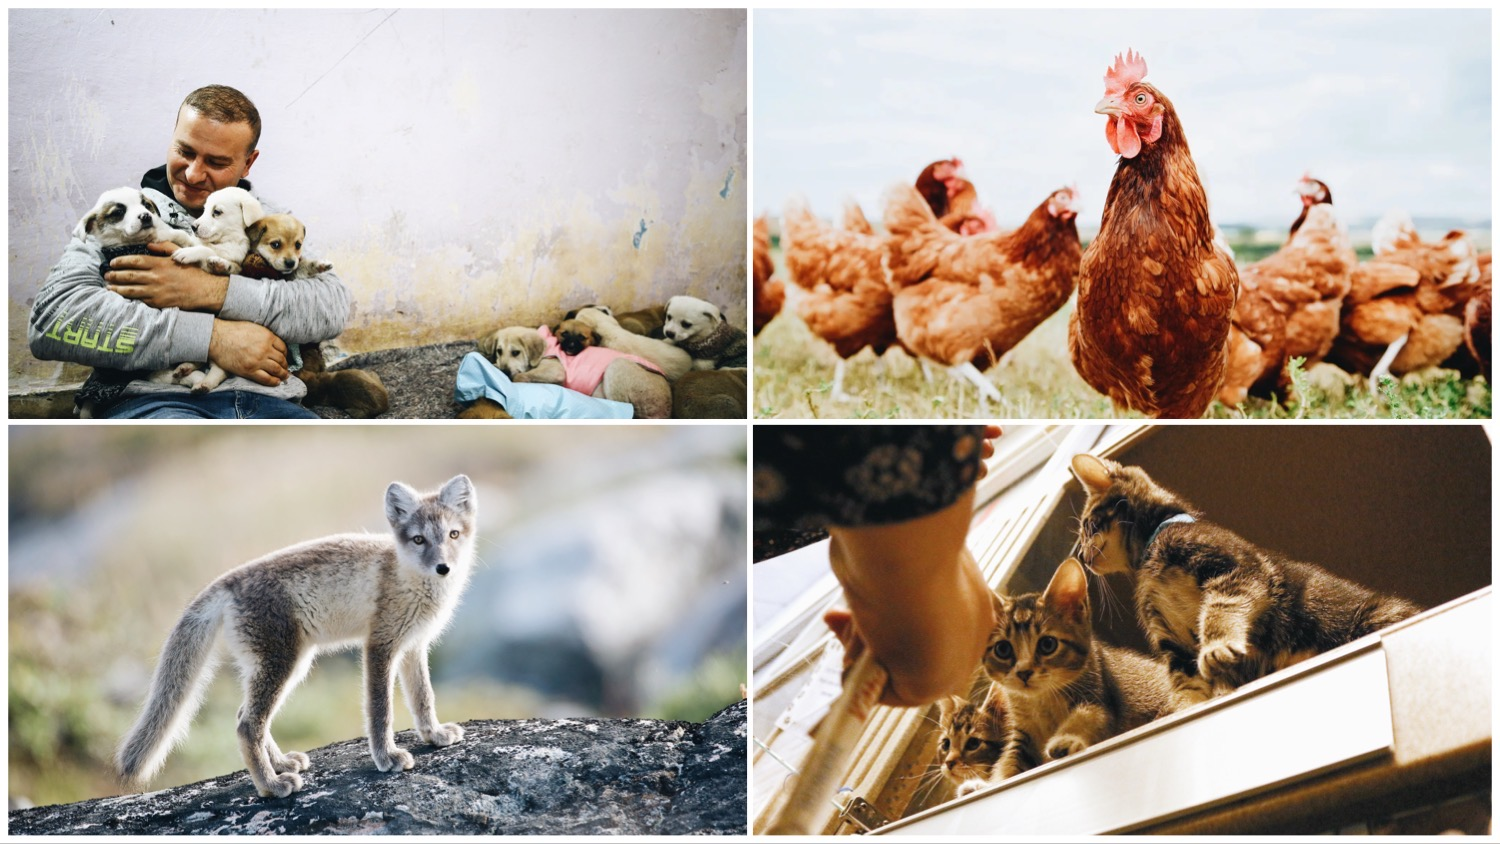 Four-way split image shows Volkan Koc sheltering with stray dogs (top left), free range chickens (top right), a grey fox (bottom left), and kittens in an open window (bottom right).